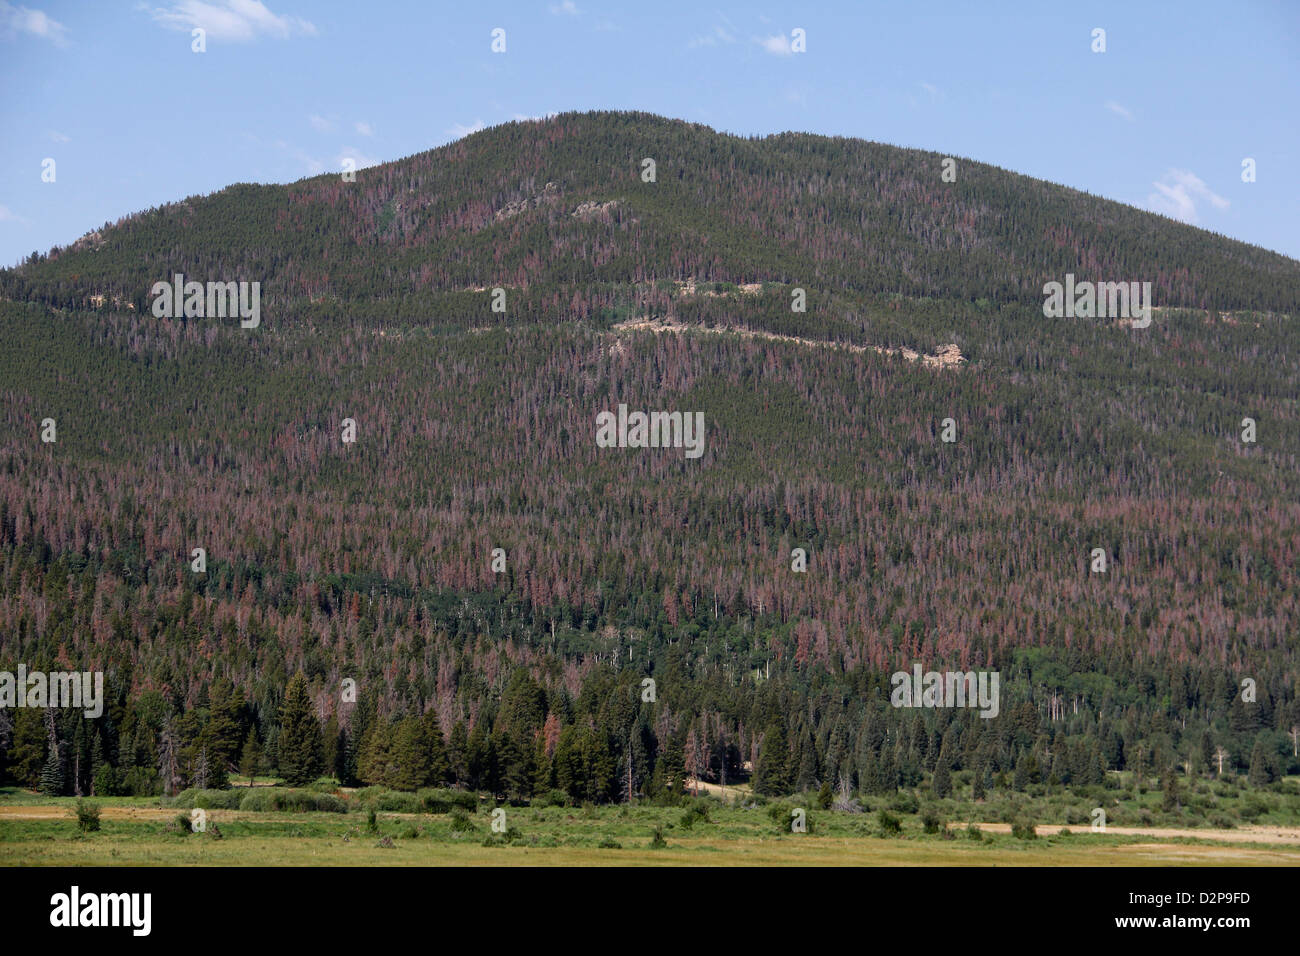 Dead pine trees from Pine Beetle Epidemic Rocky Mountain National Park - Stock Image